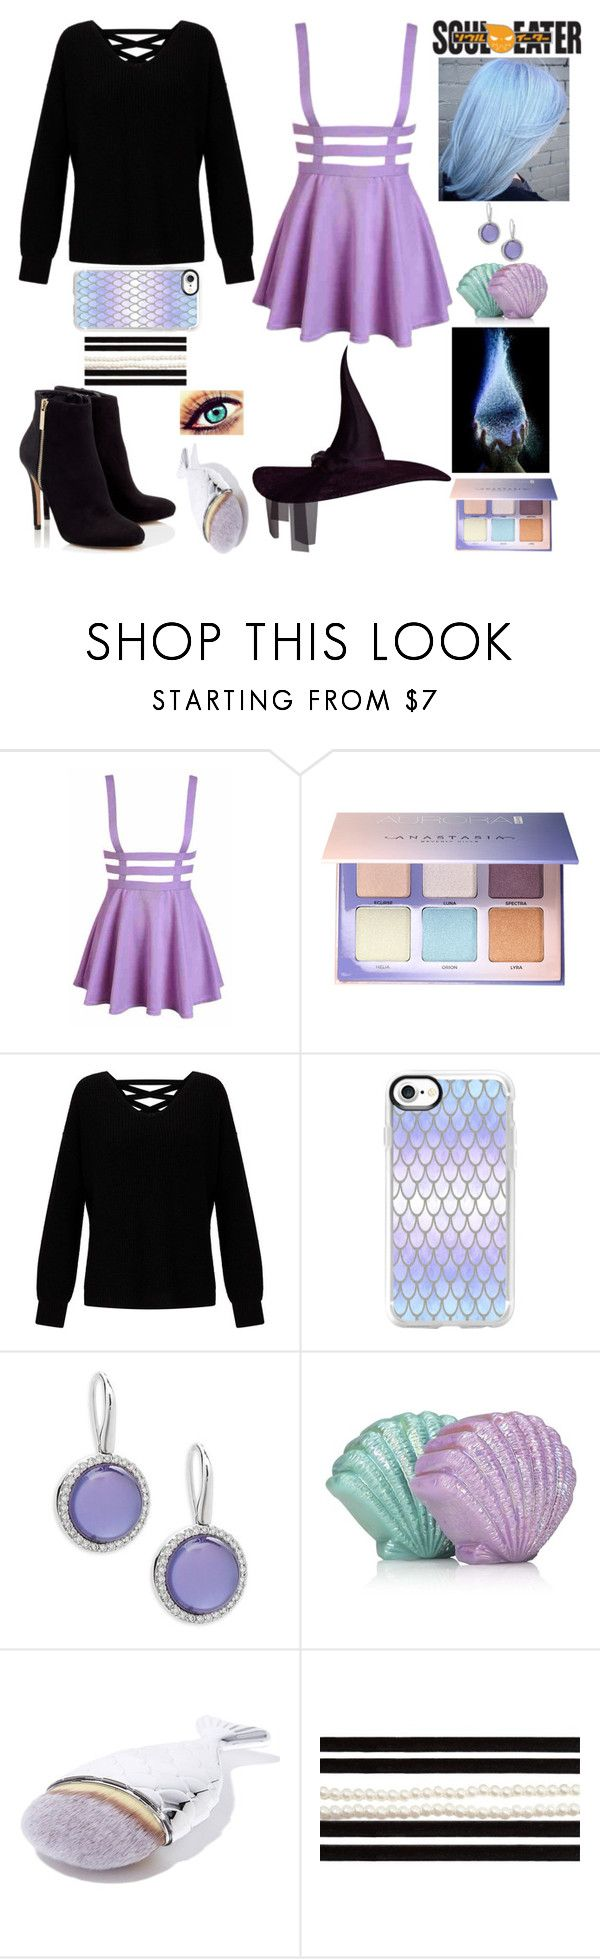 """""""Soul Eater Inspired"""" by lucy-wolf ❤ liked on Polyvore featuring Anastasia Beverly Hills, Miss Selfridge, Casetify, Lipsy, Roberto Coin, Mermaid Salon and New Directions"""